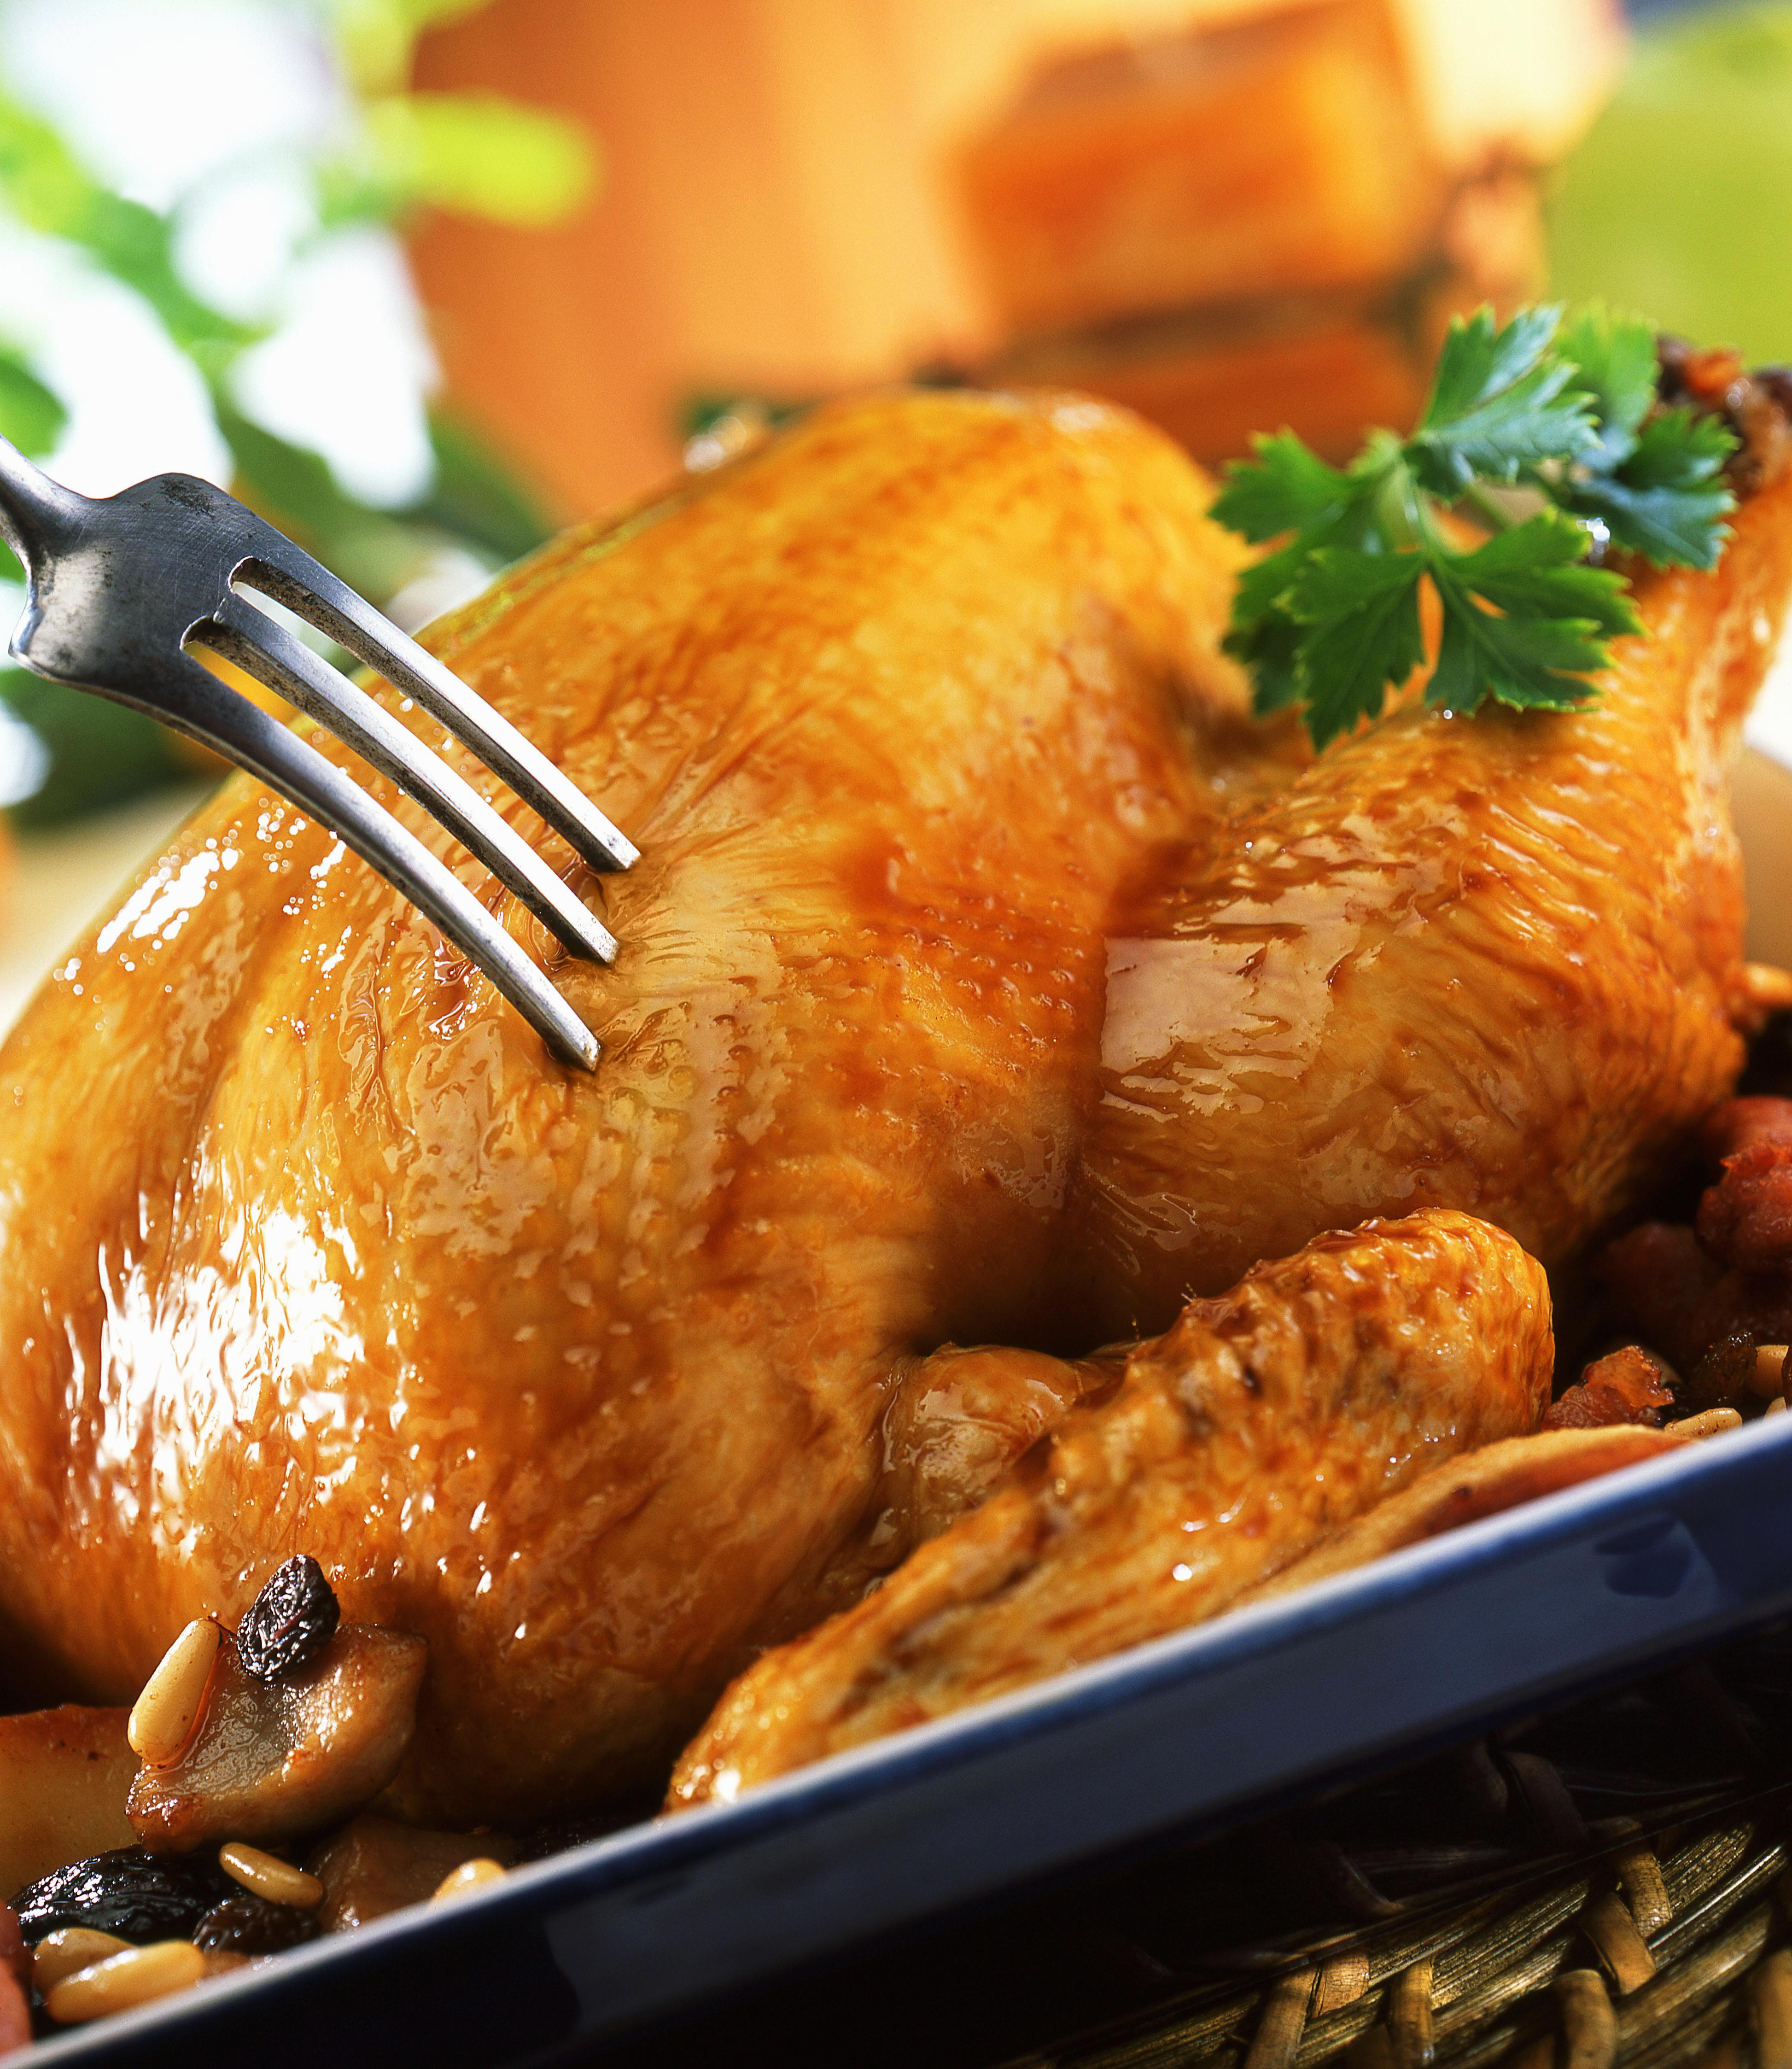 Roasted chicken with fork, close-up